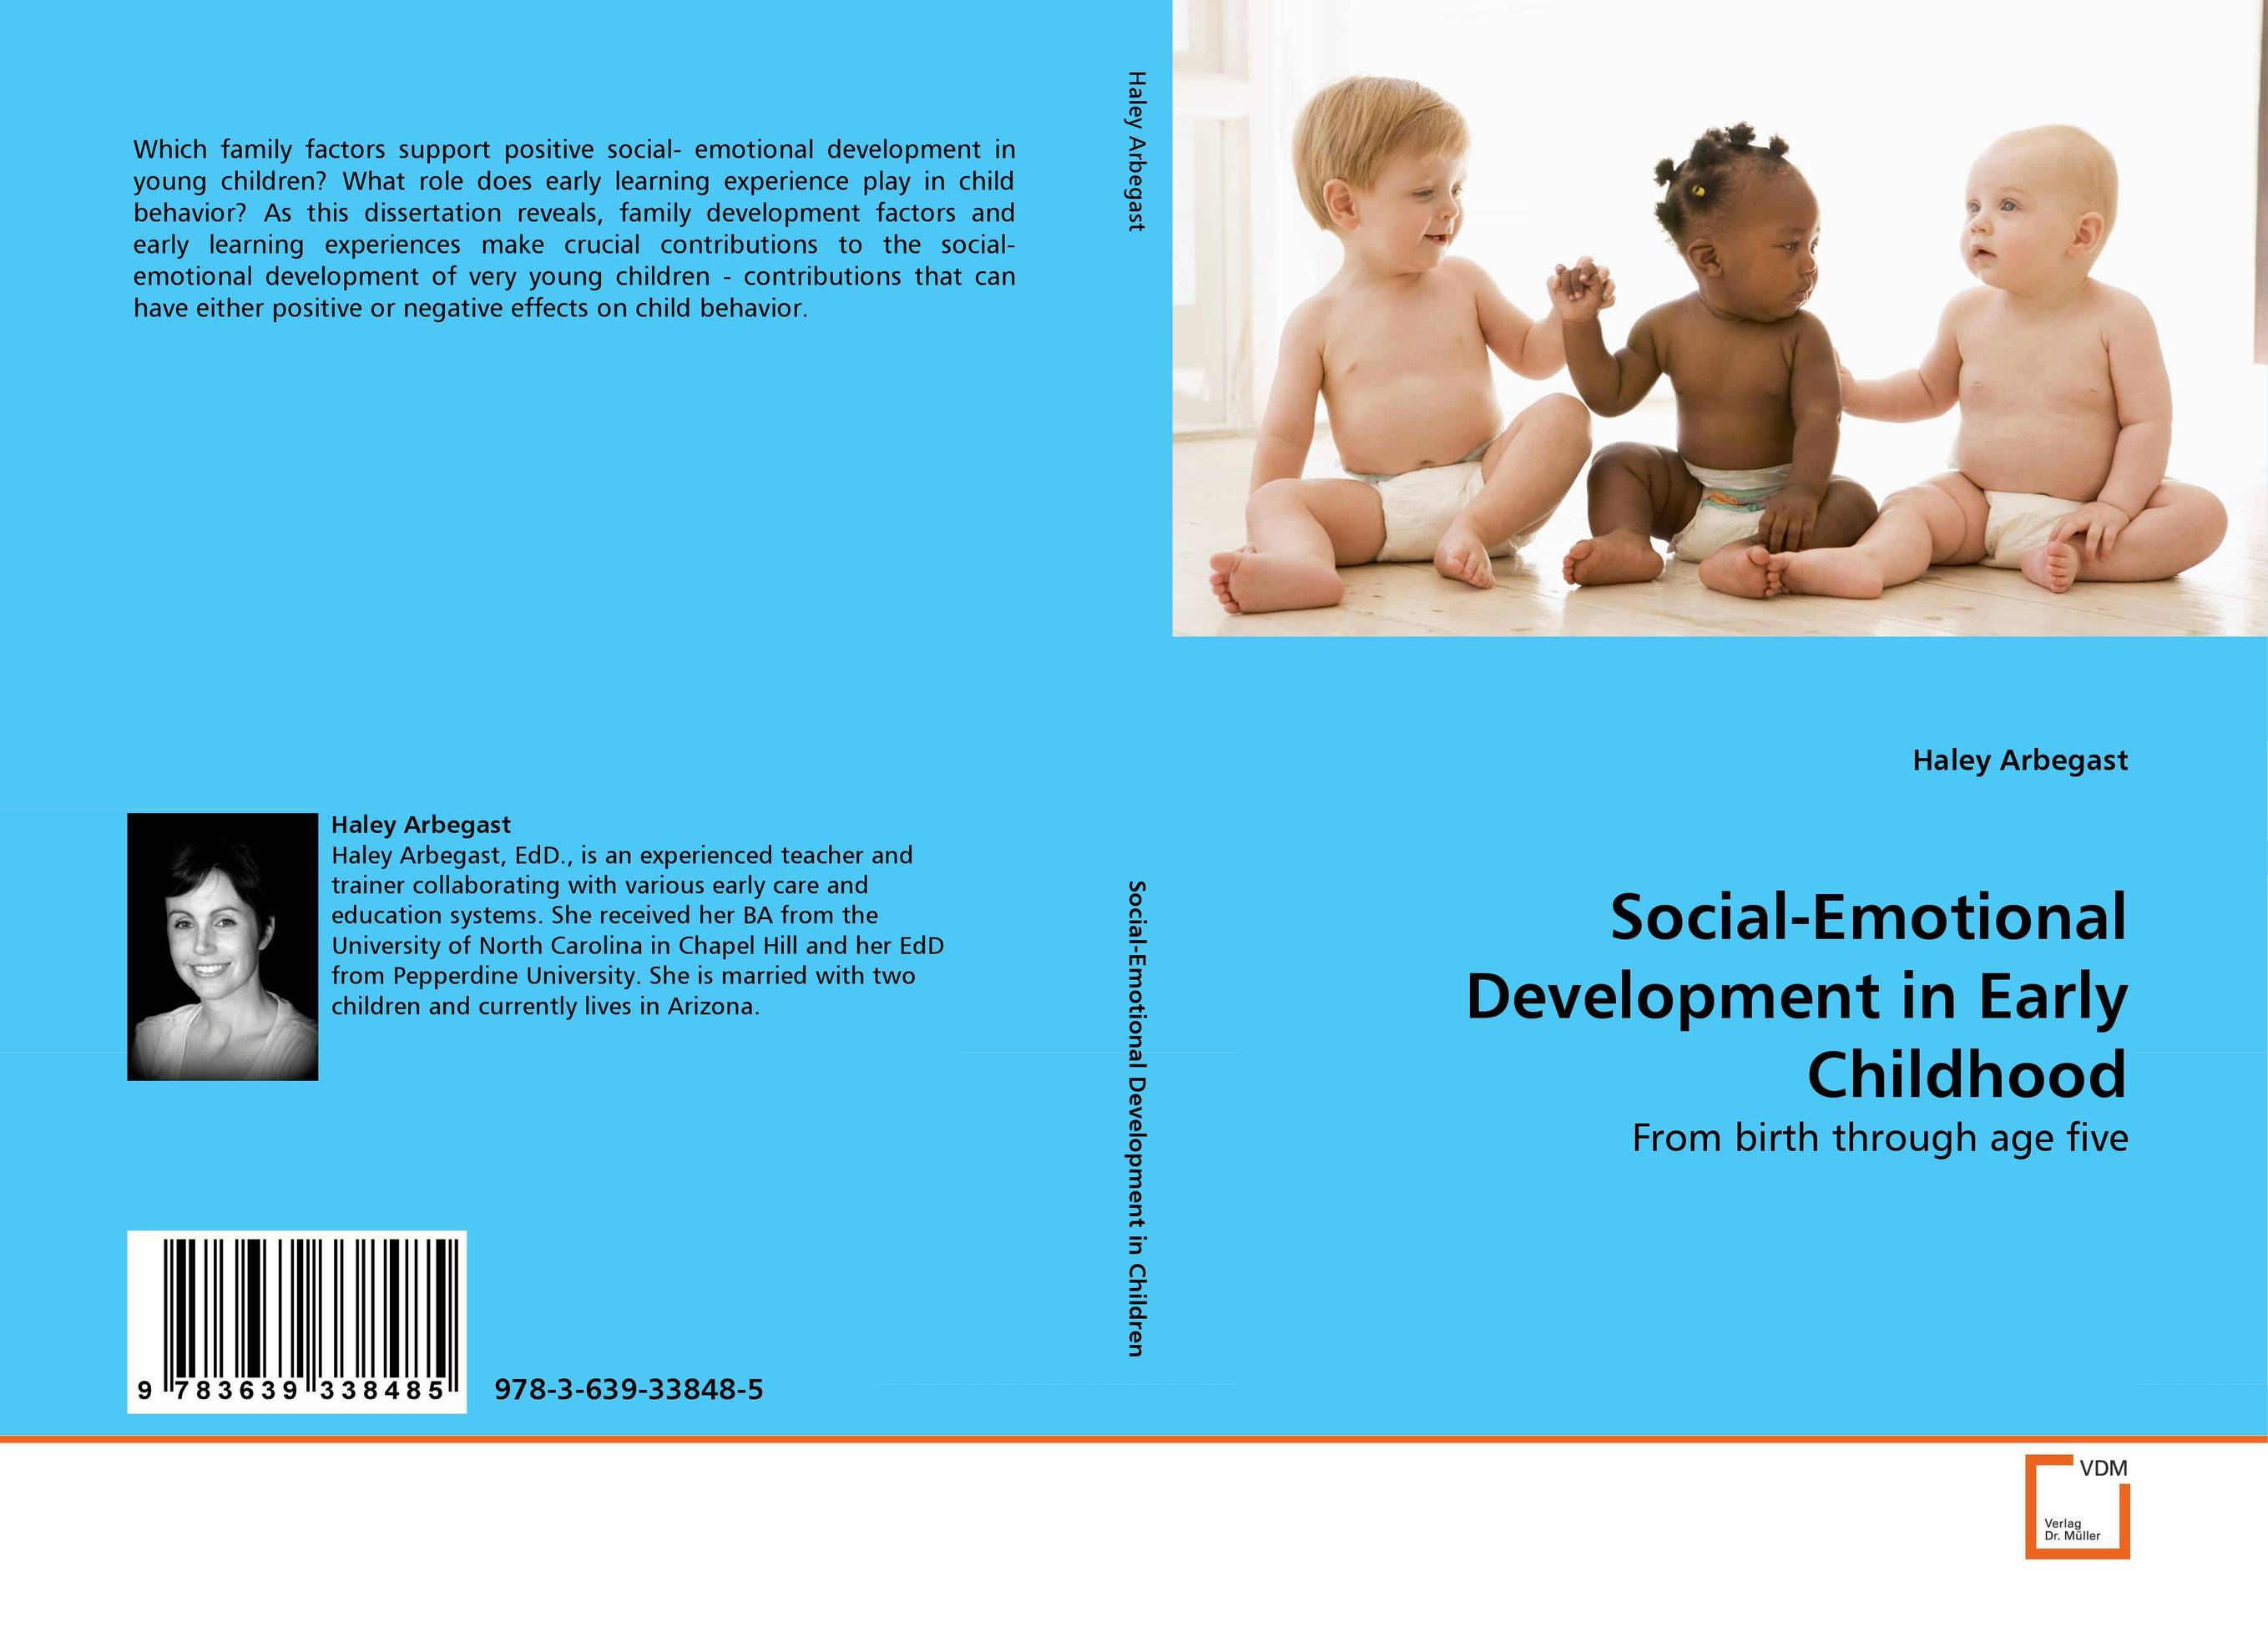 Social-Emotional Development in Early Childhood